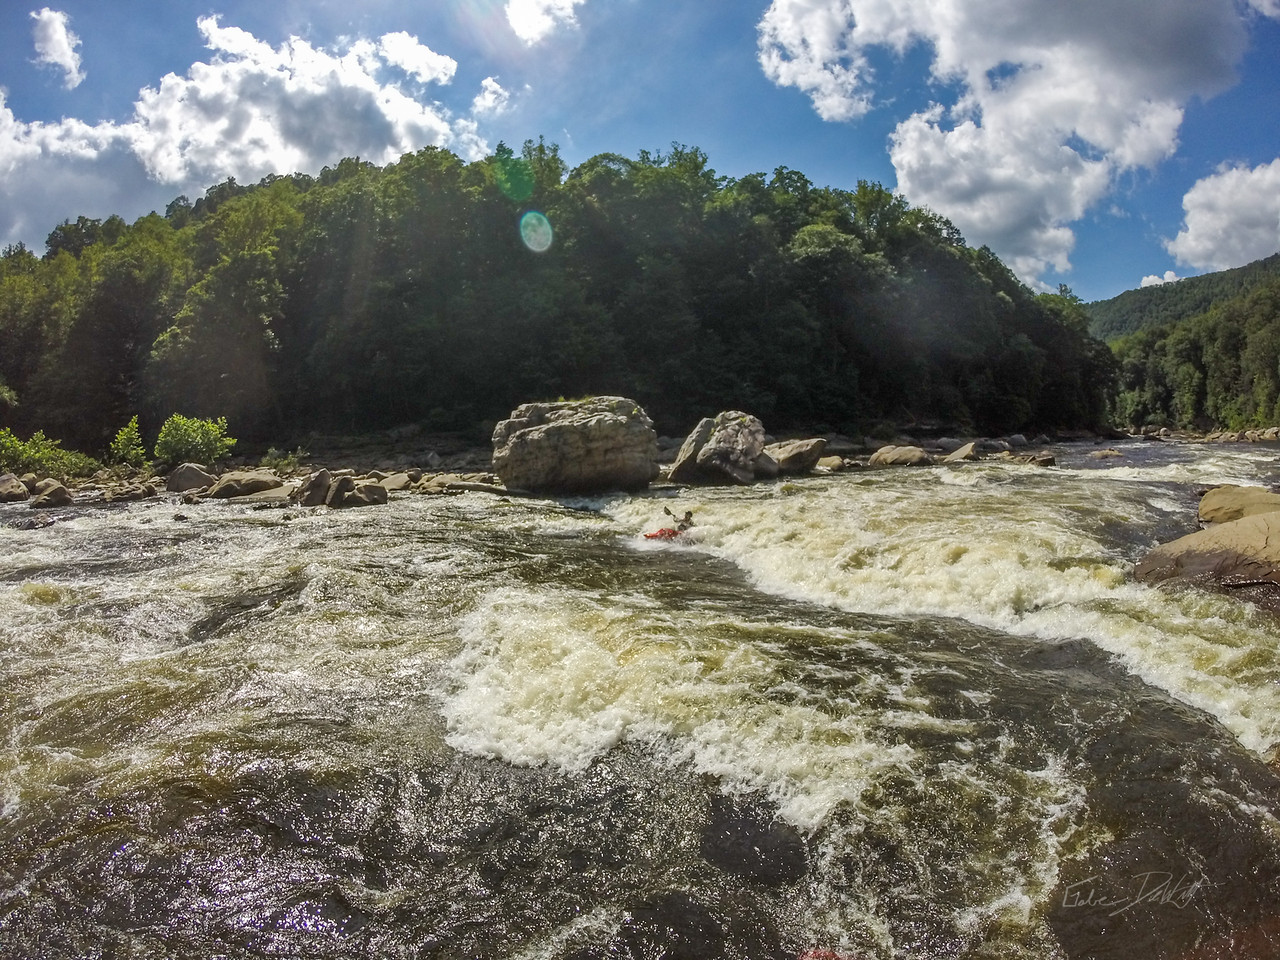 Cheat; Canyon; Rafting; Albright; Gabe; DeWitt; Appalachia; Boating; Cheat Canyon; Cheat River; Friends; Get outside; Go play; Matt Shreve; Summer; WV; West Virginia; White Water; adventure; adventure sports; play boating; water DCIM\100GOPRO